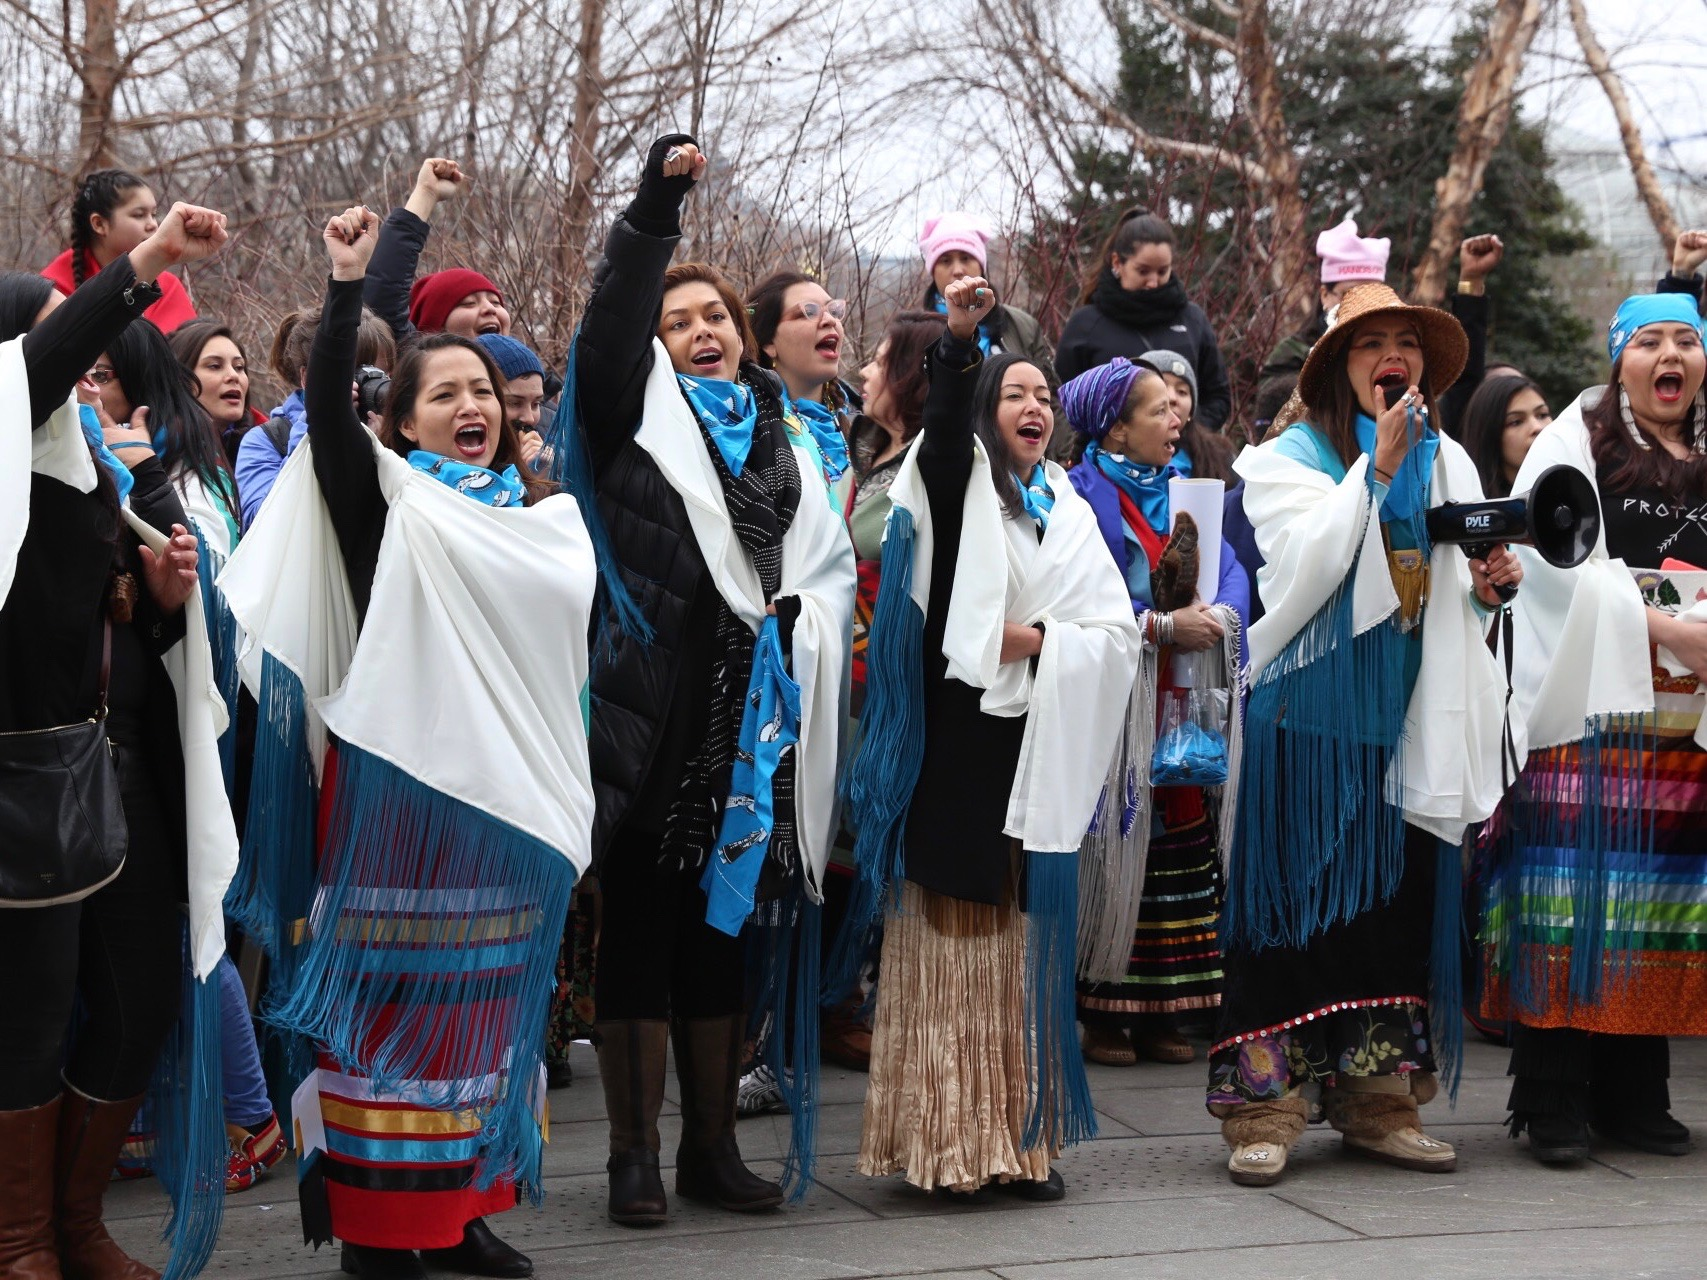 Alex Jacobs: Native women have always been on the frontlines